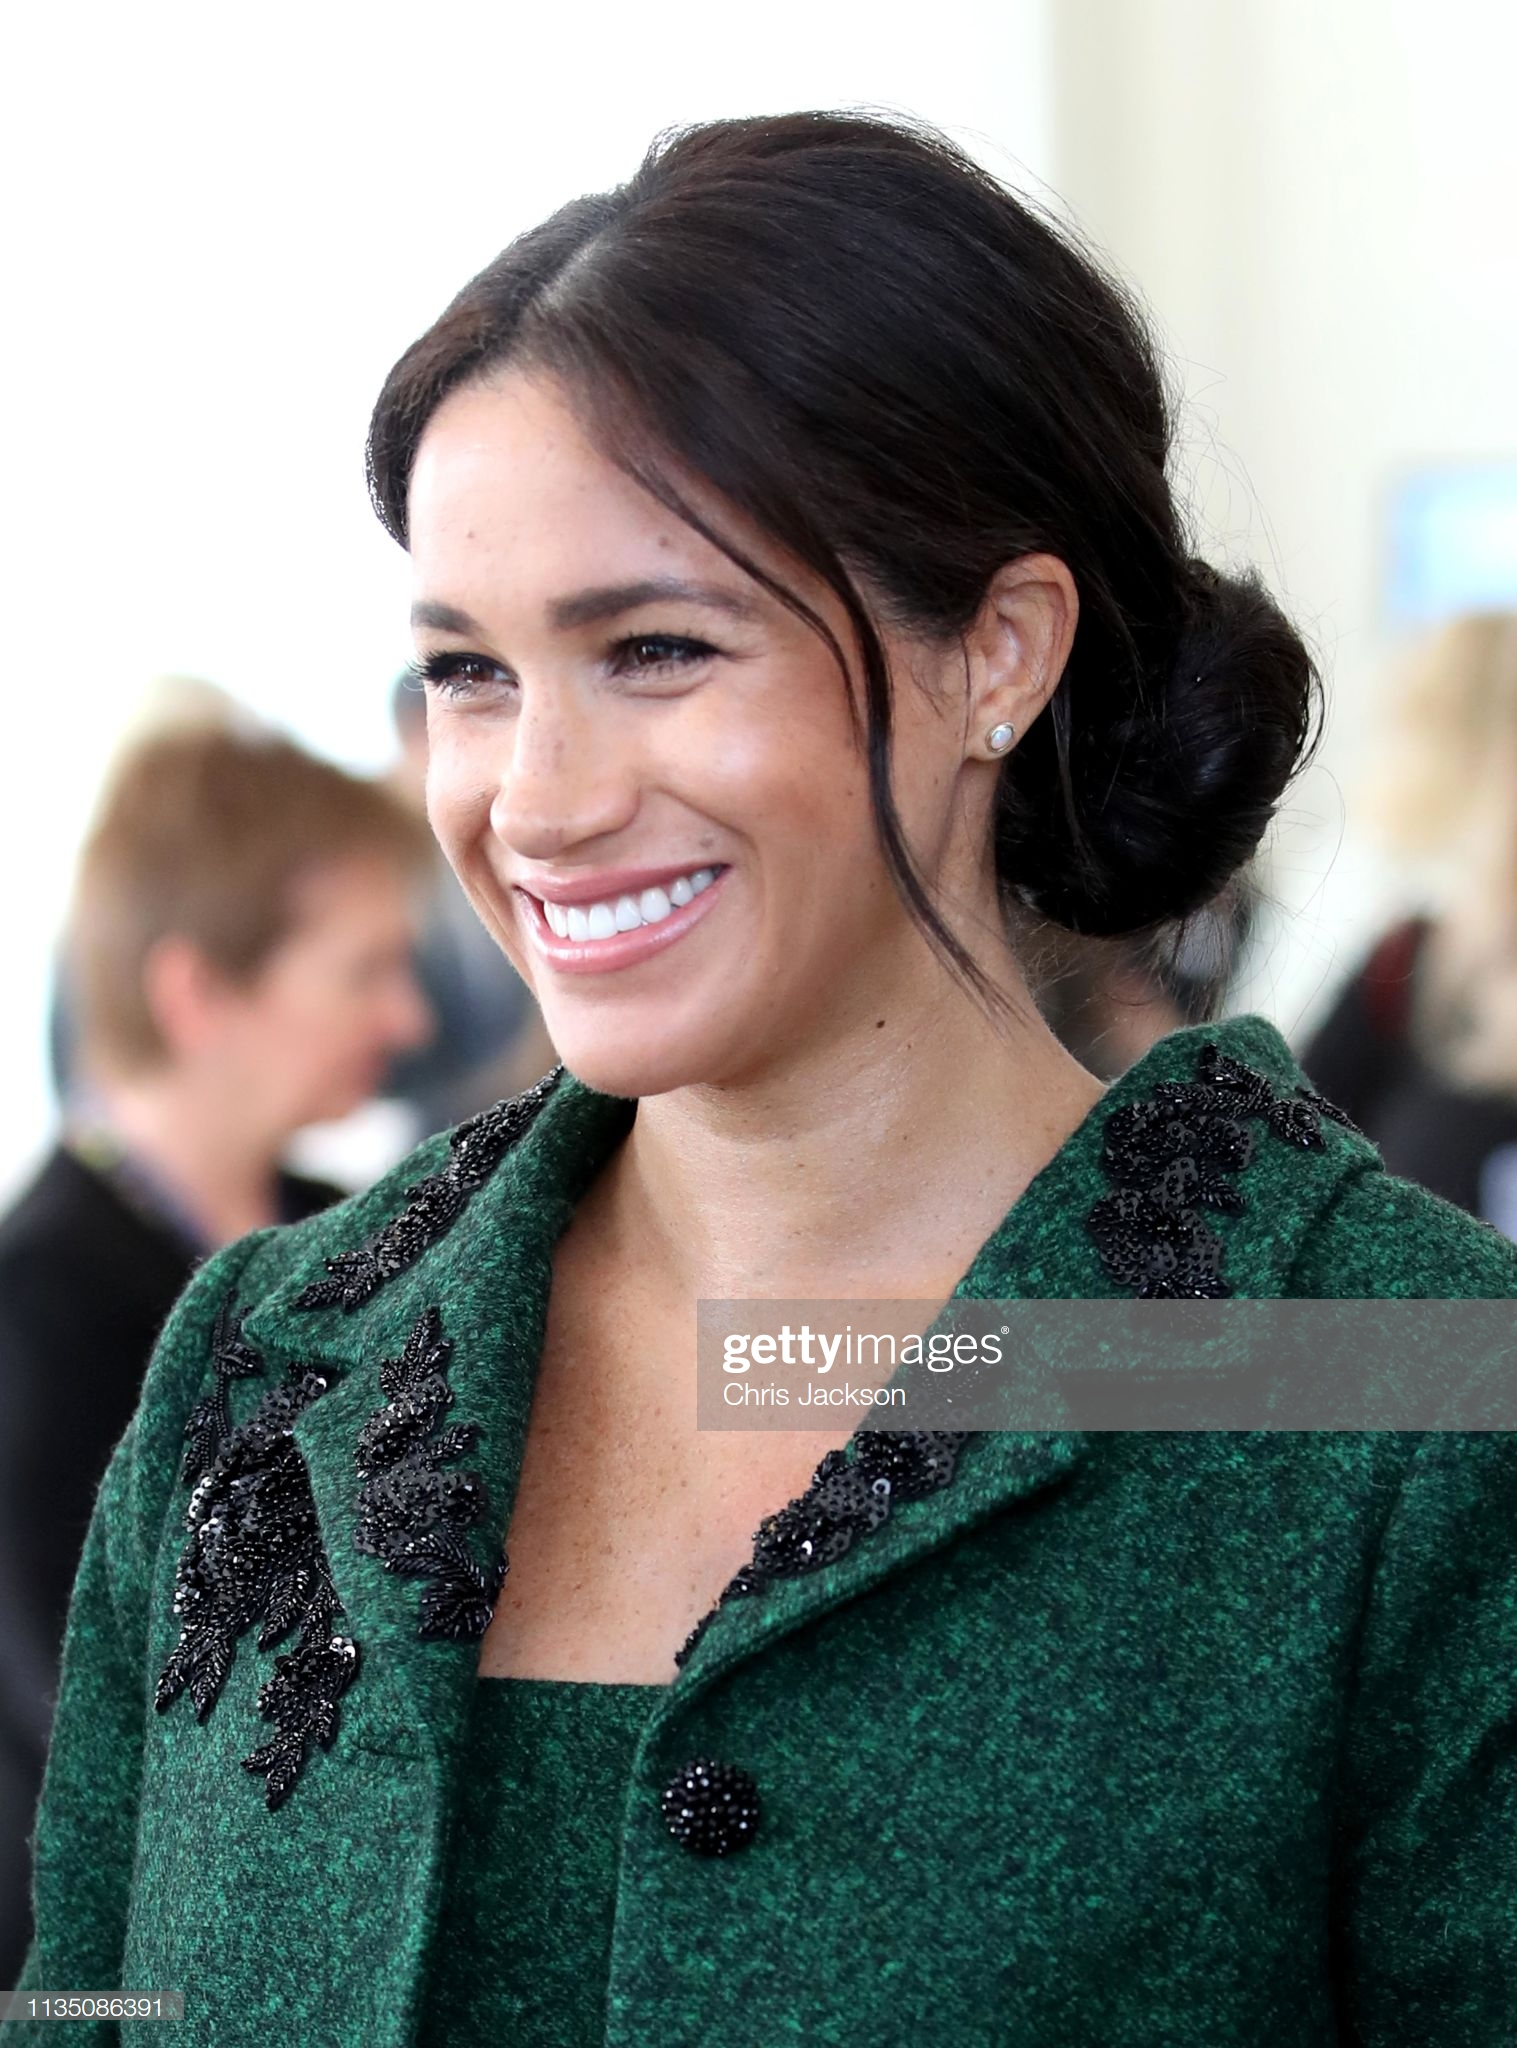 The Duke And Duchess Of Sussex Attend A Commonwealth Day Youth Event At Canada House : Fotografía de noticias